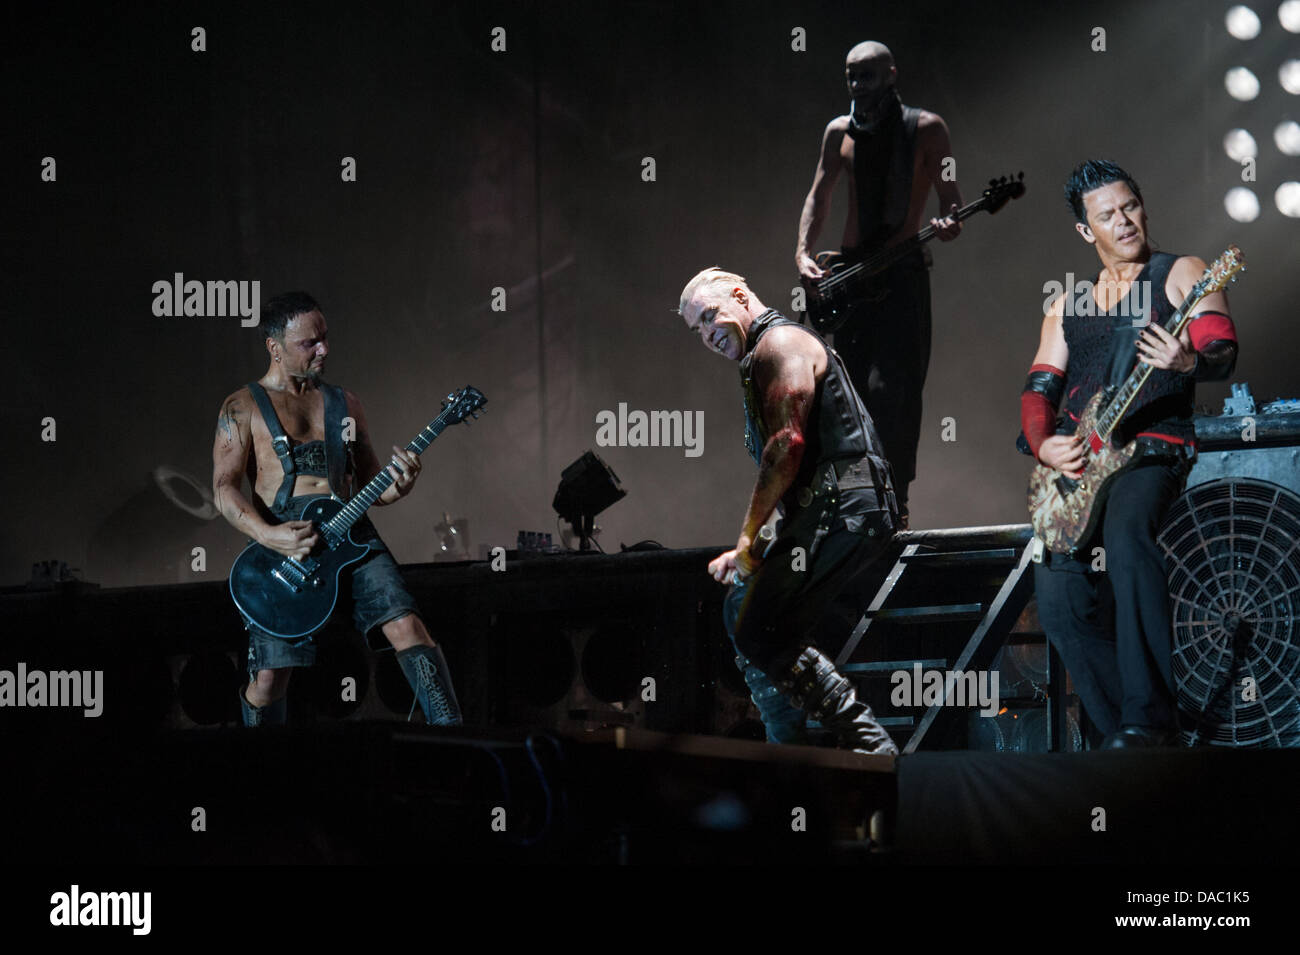 Rome, Italy. 09th July, 2013.  Metal rock band Rammstein, Rome (Italy) concert, 09-07-2013 Credit:  Roberto Nistri/Alamy Stock Photo